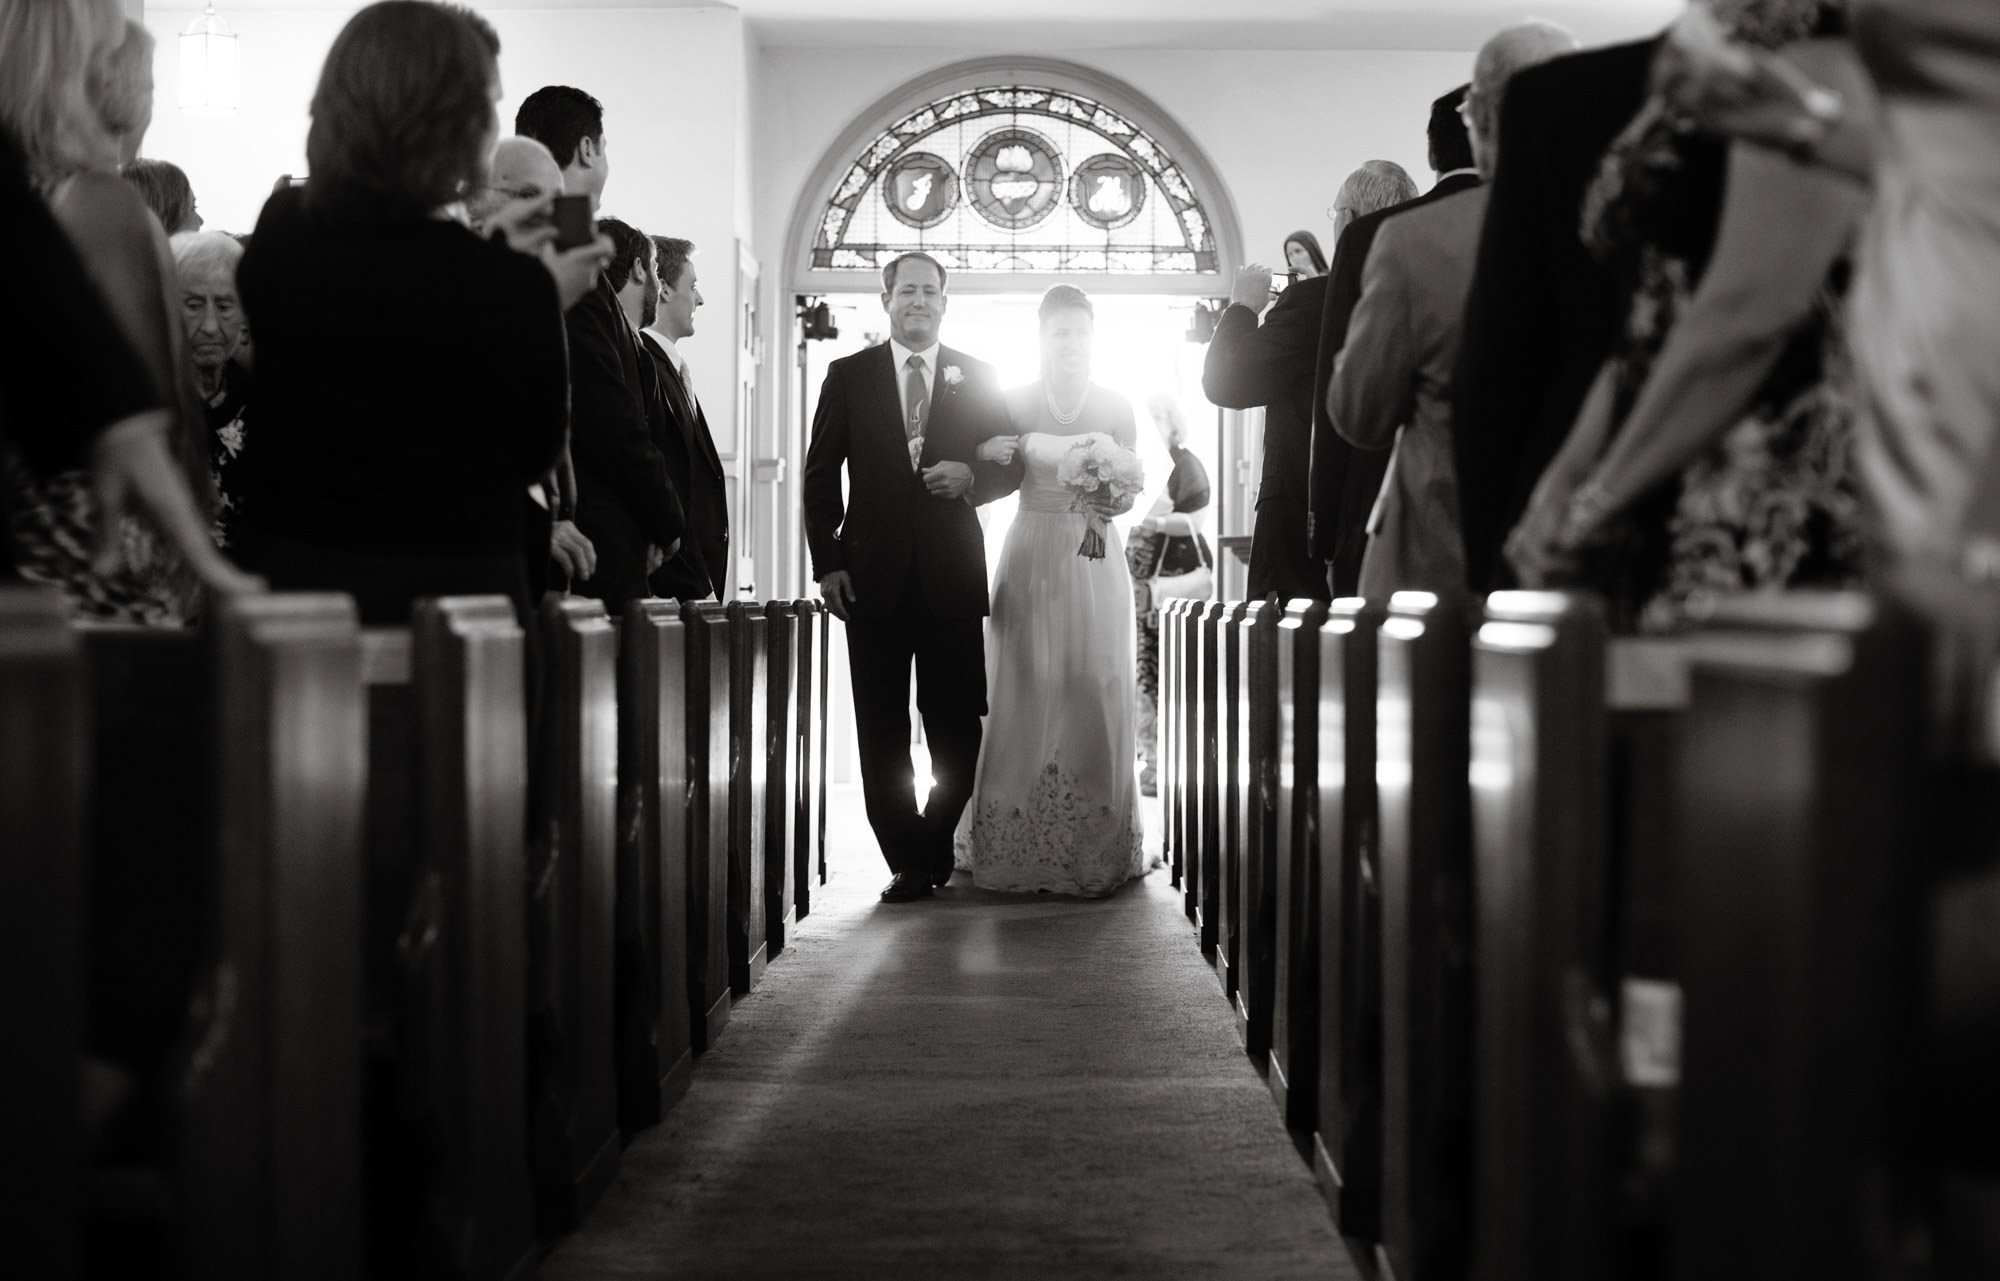 The bride walks down the aisle during her wedding ceremony at St. Mary's Catholic Church in Rockville, MD.